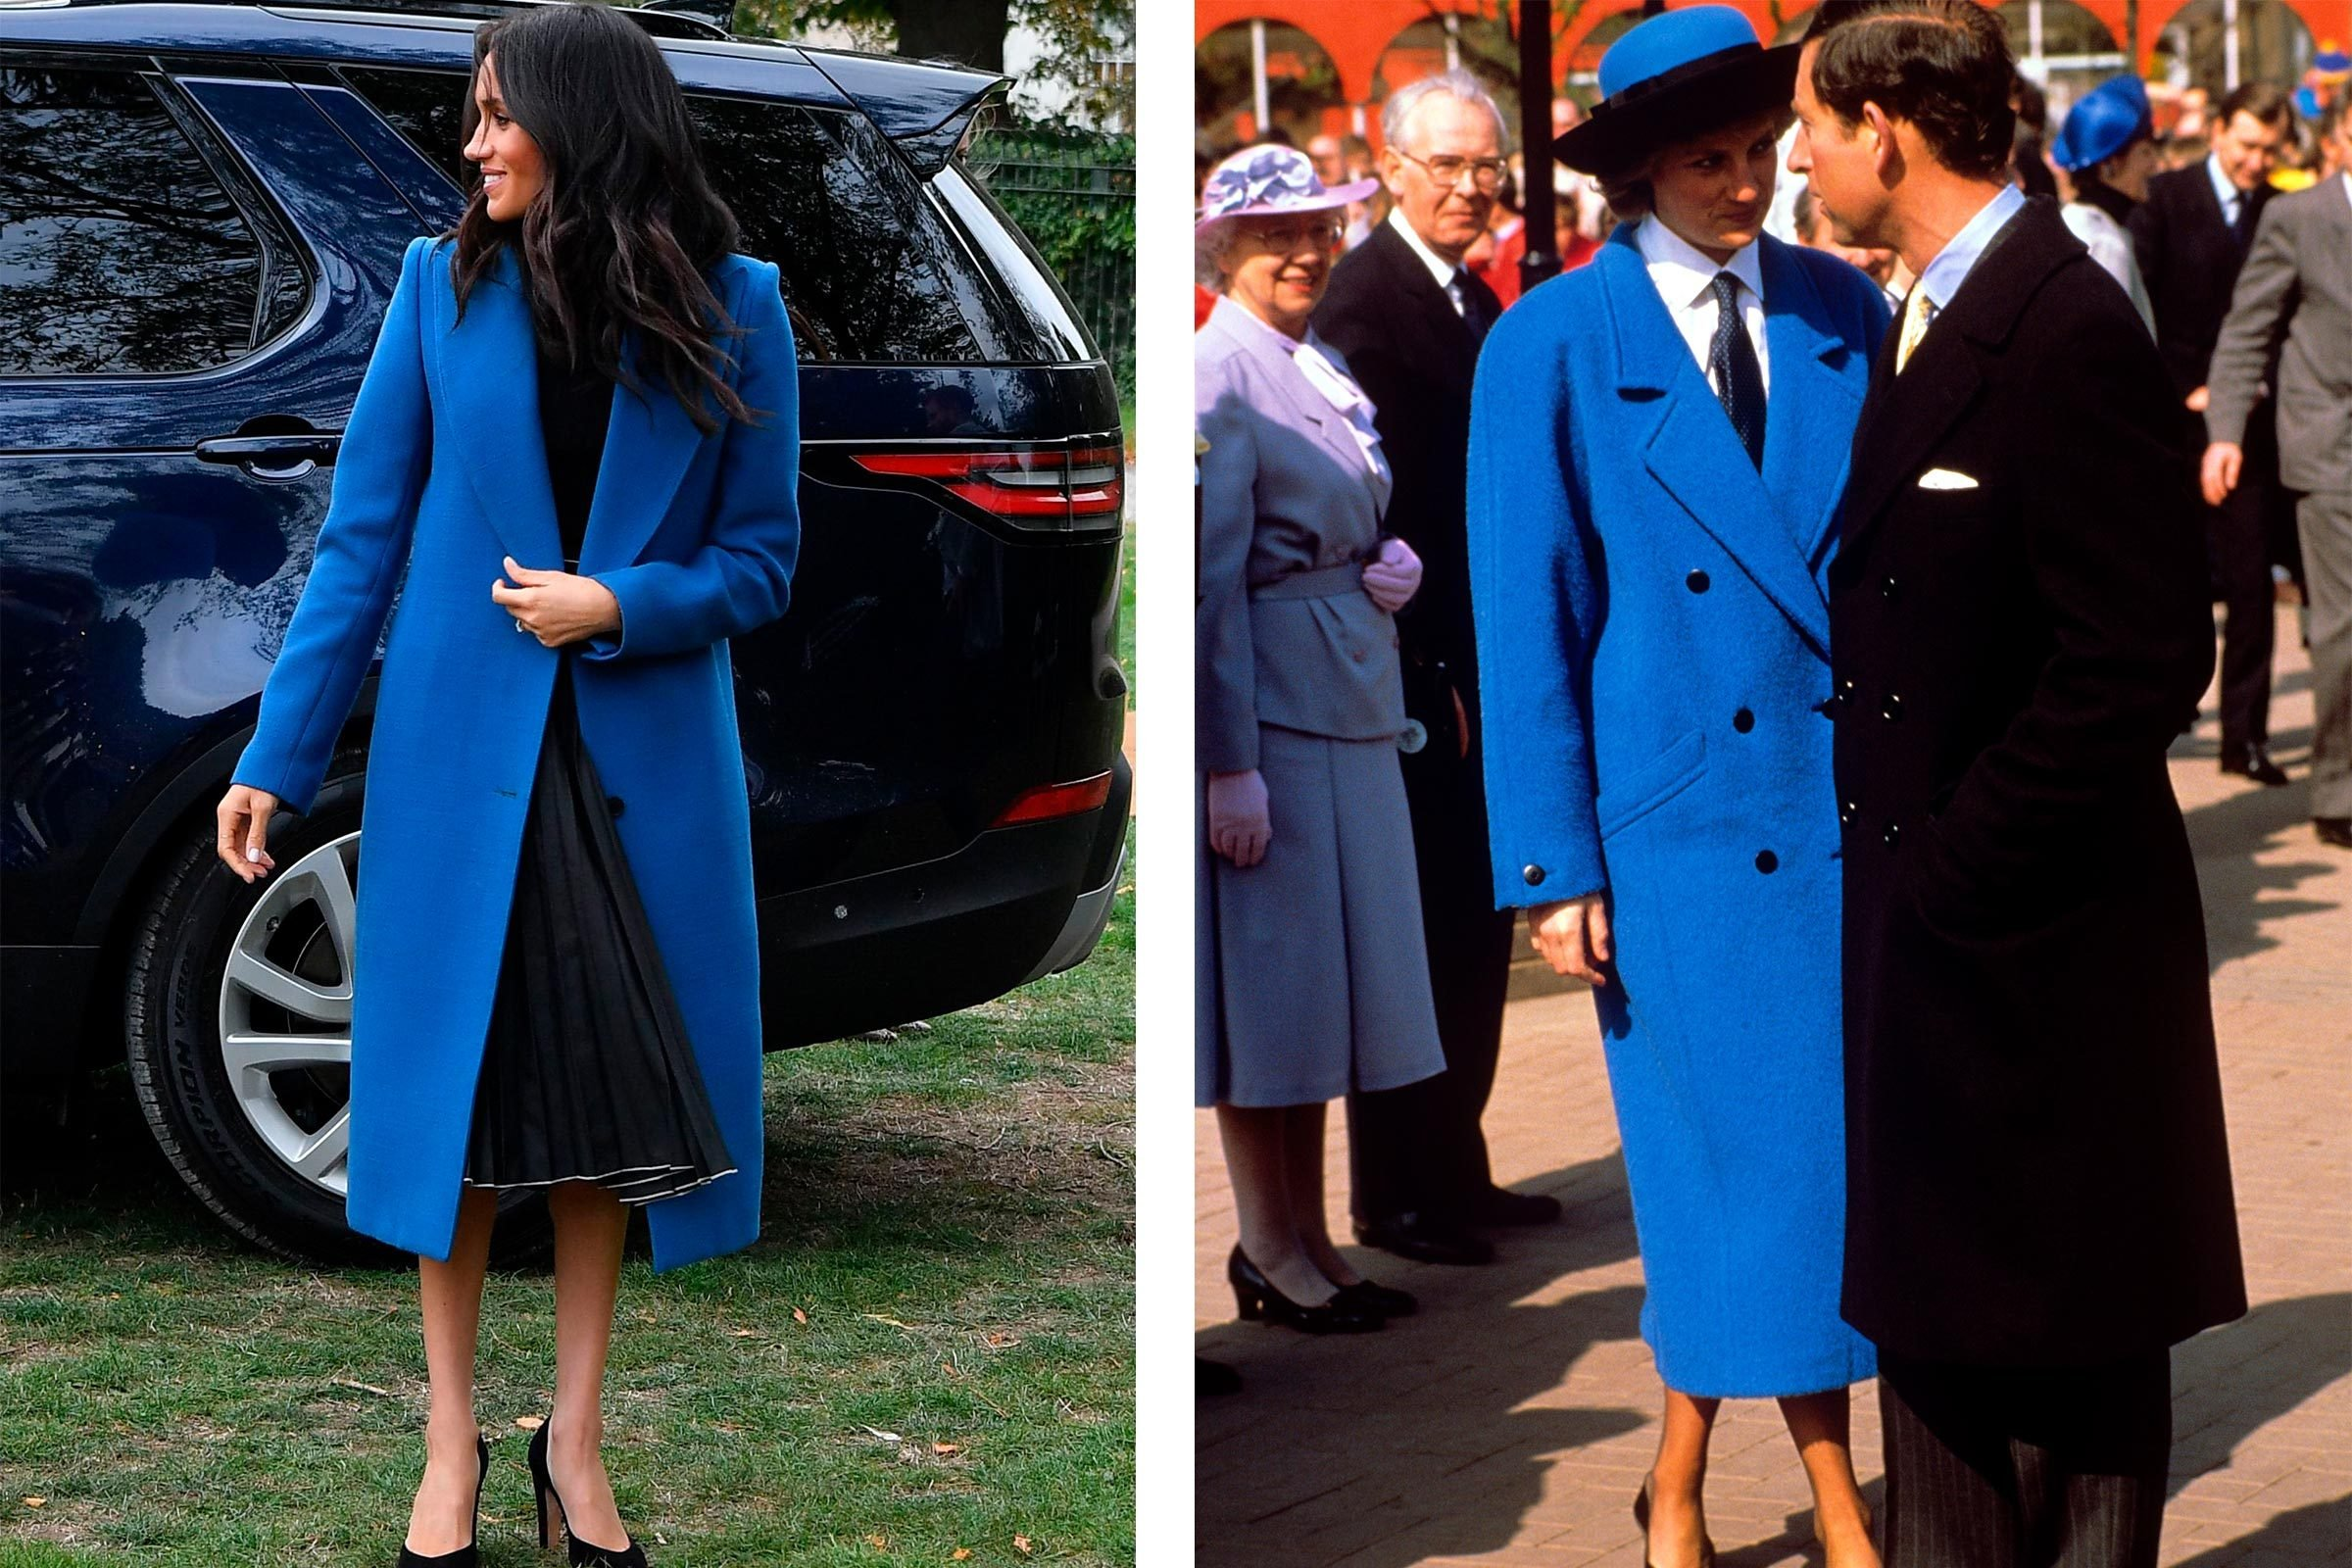 Meghan Markle Princess Diana outfits